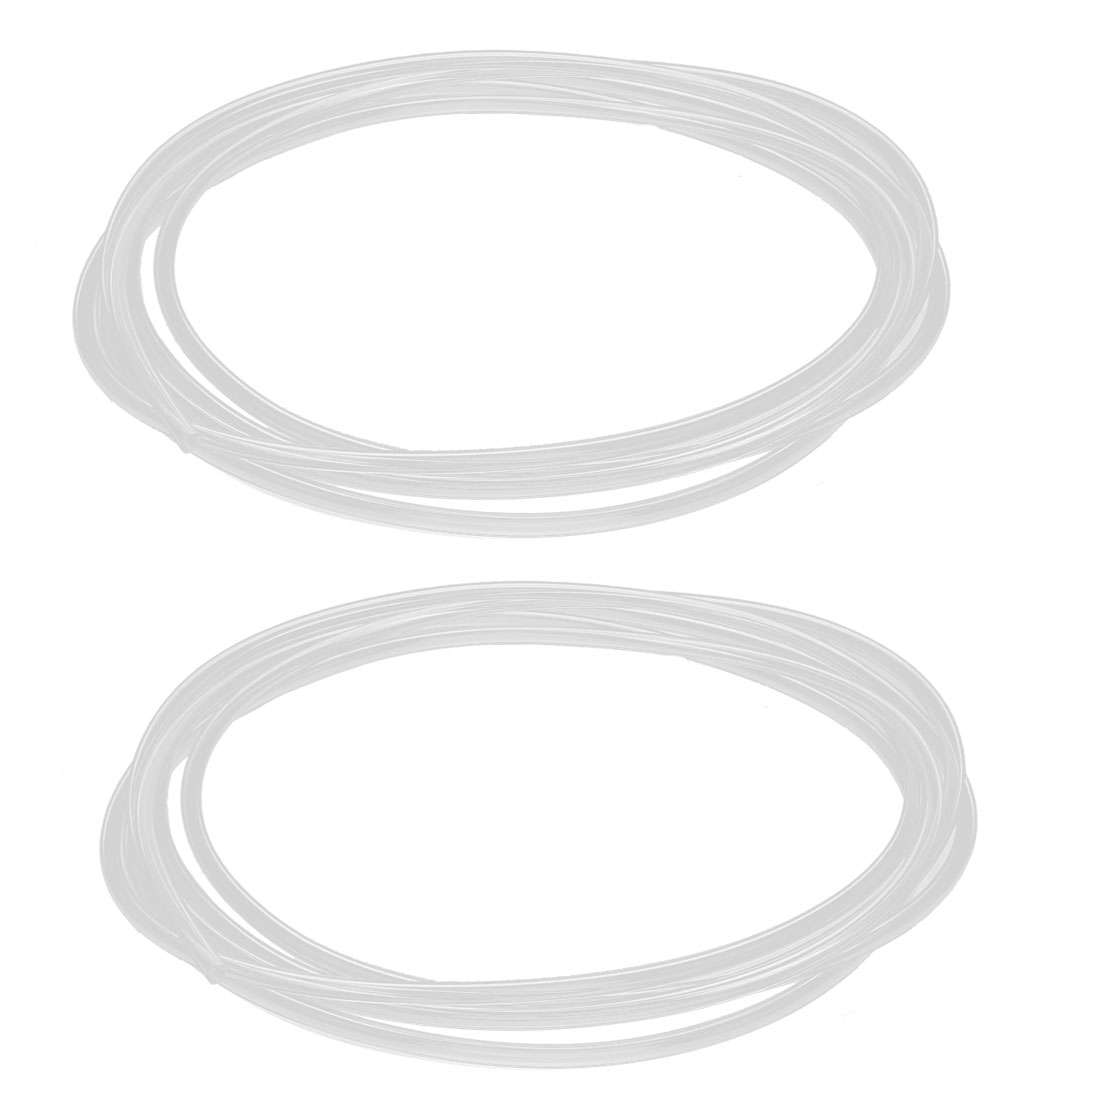 8Ft Length 4mm x 2.5mm Dia Compressor Fitting Polyurethane PU Air Pipe Hose Tube Tubing Clear 2Pcs